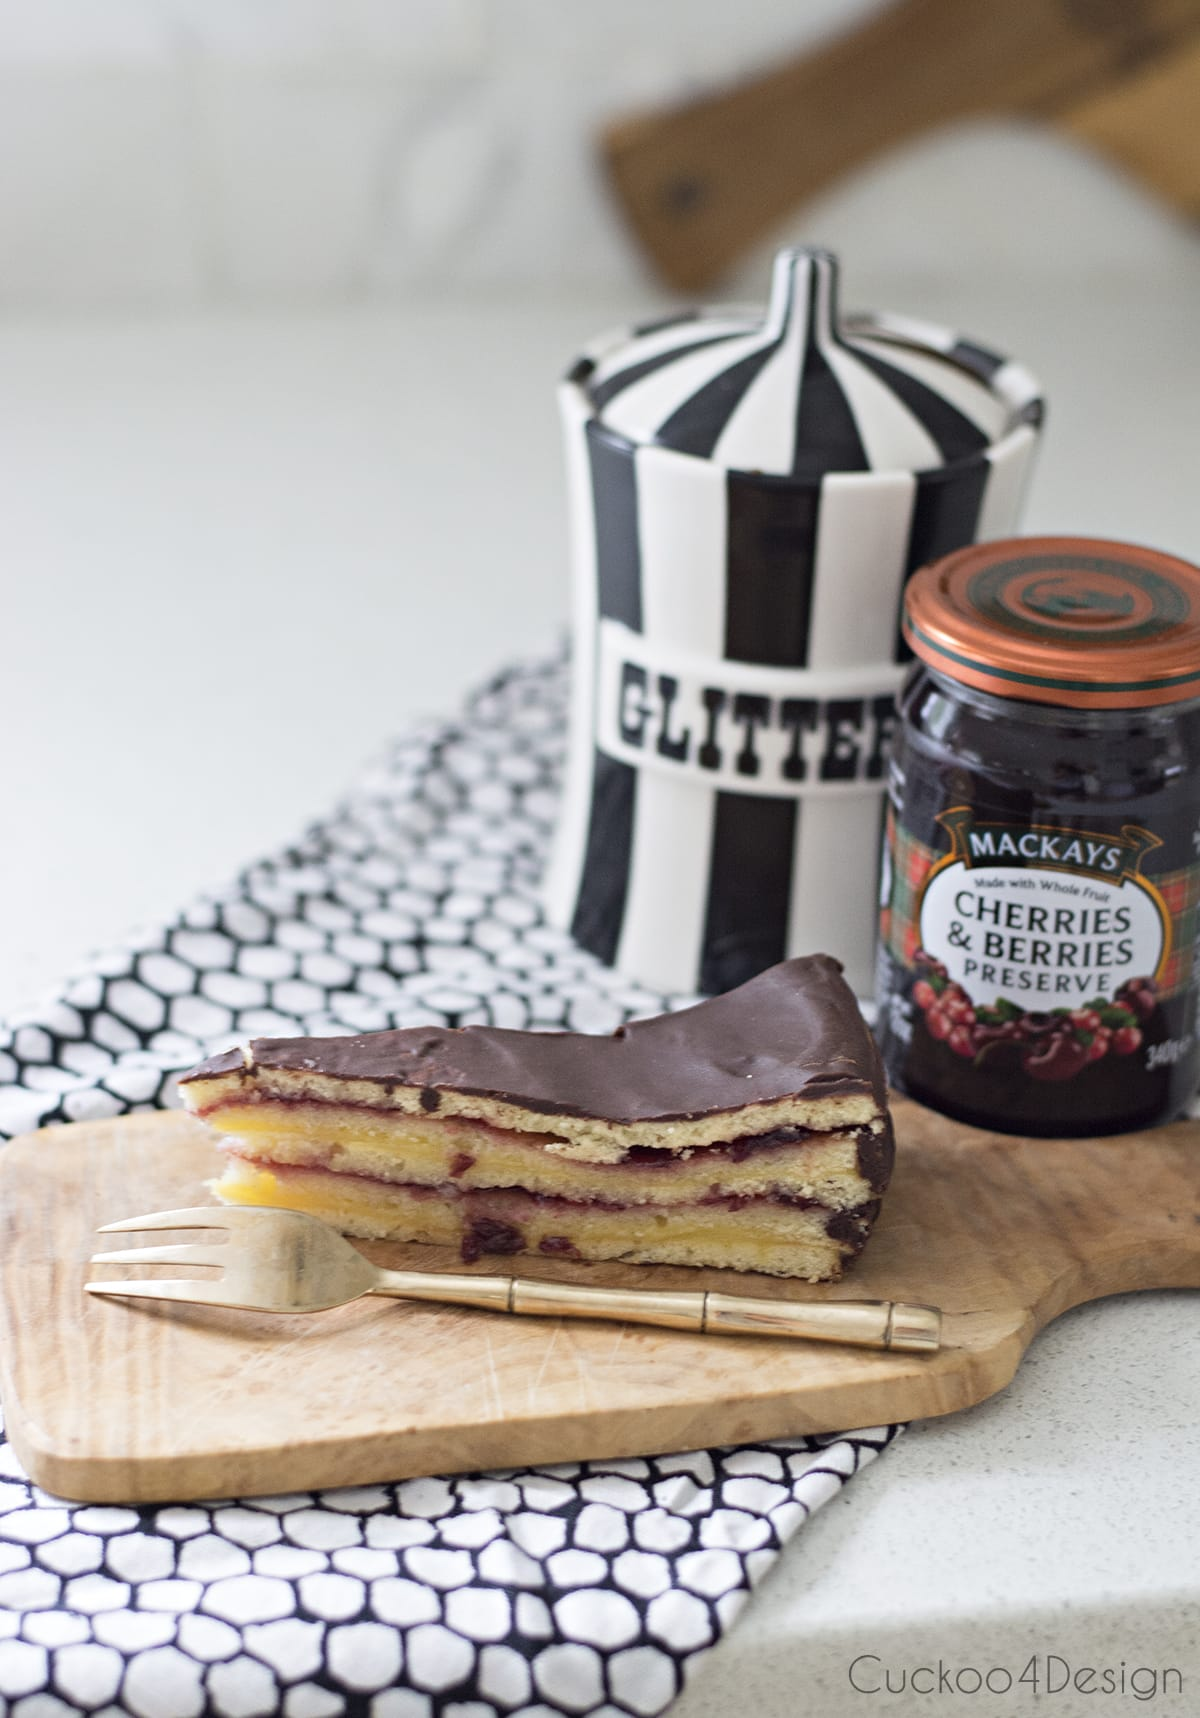 German layered cake with chocolate glaze, vanilla pudding and jelly